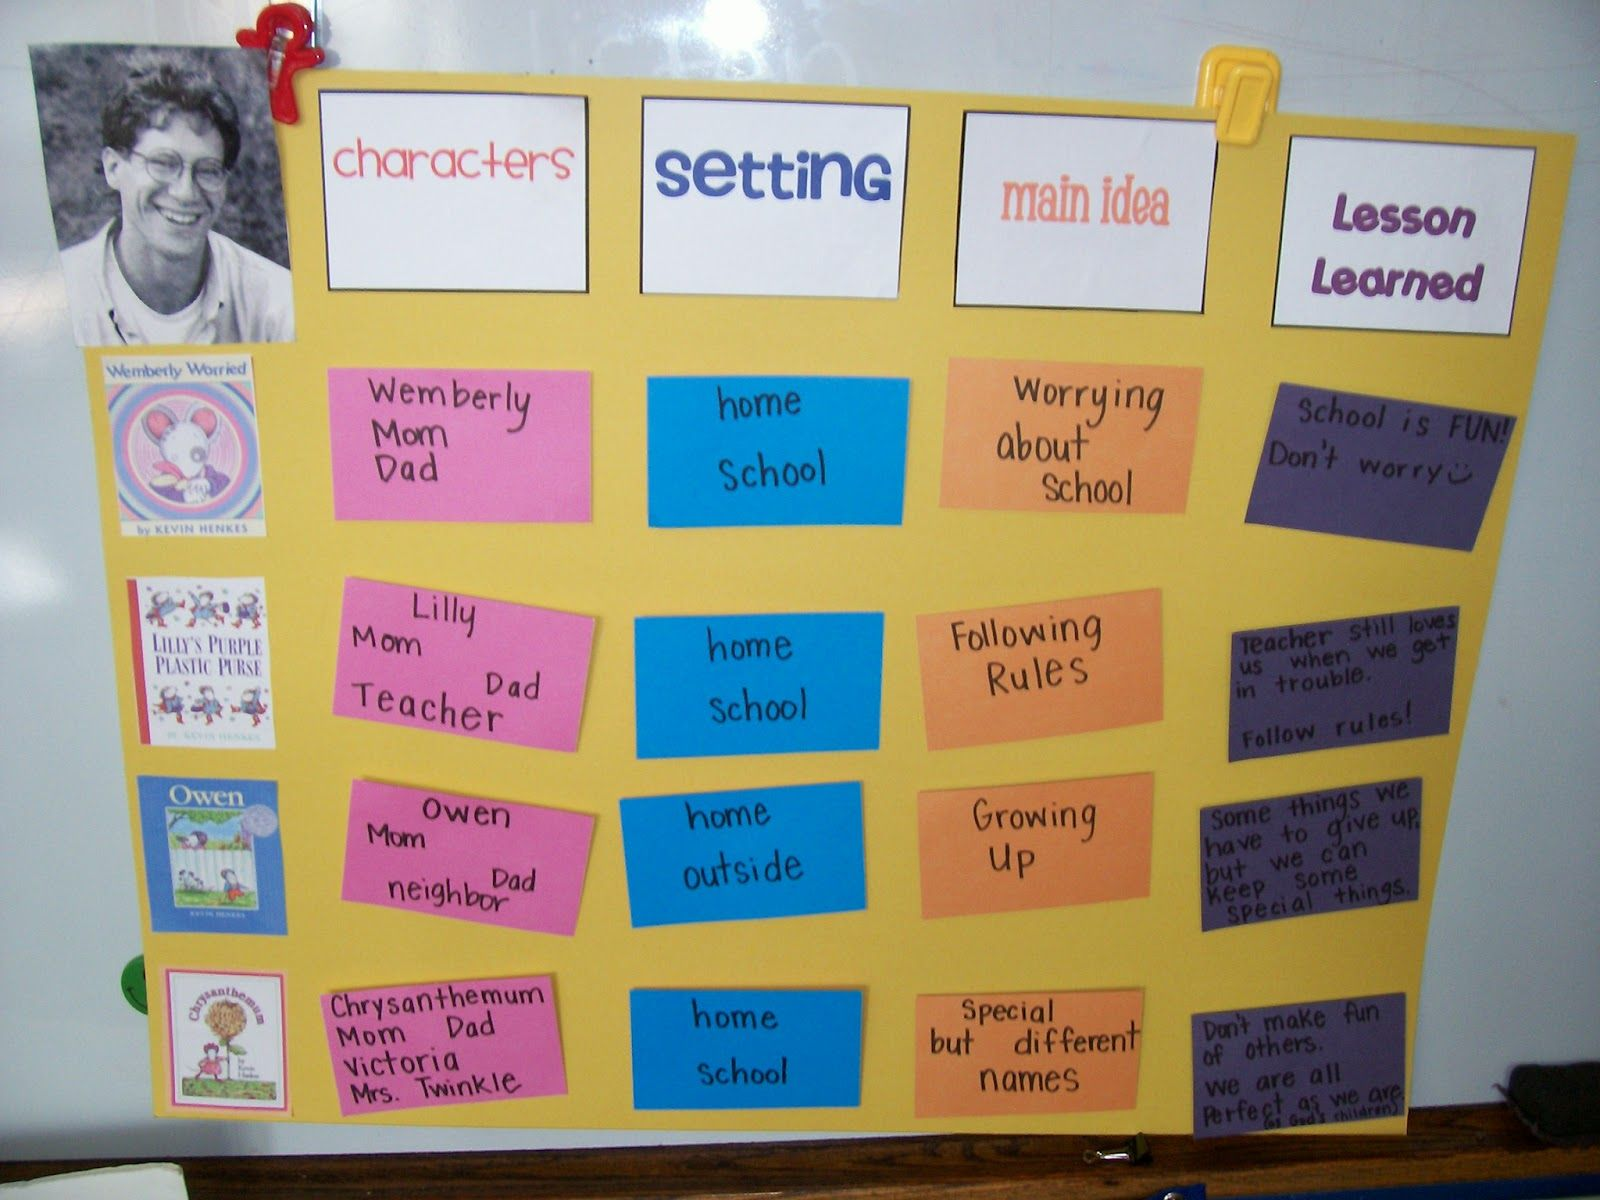 Best authors to compare and contrast?